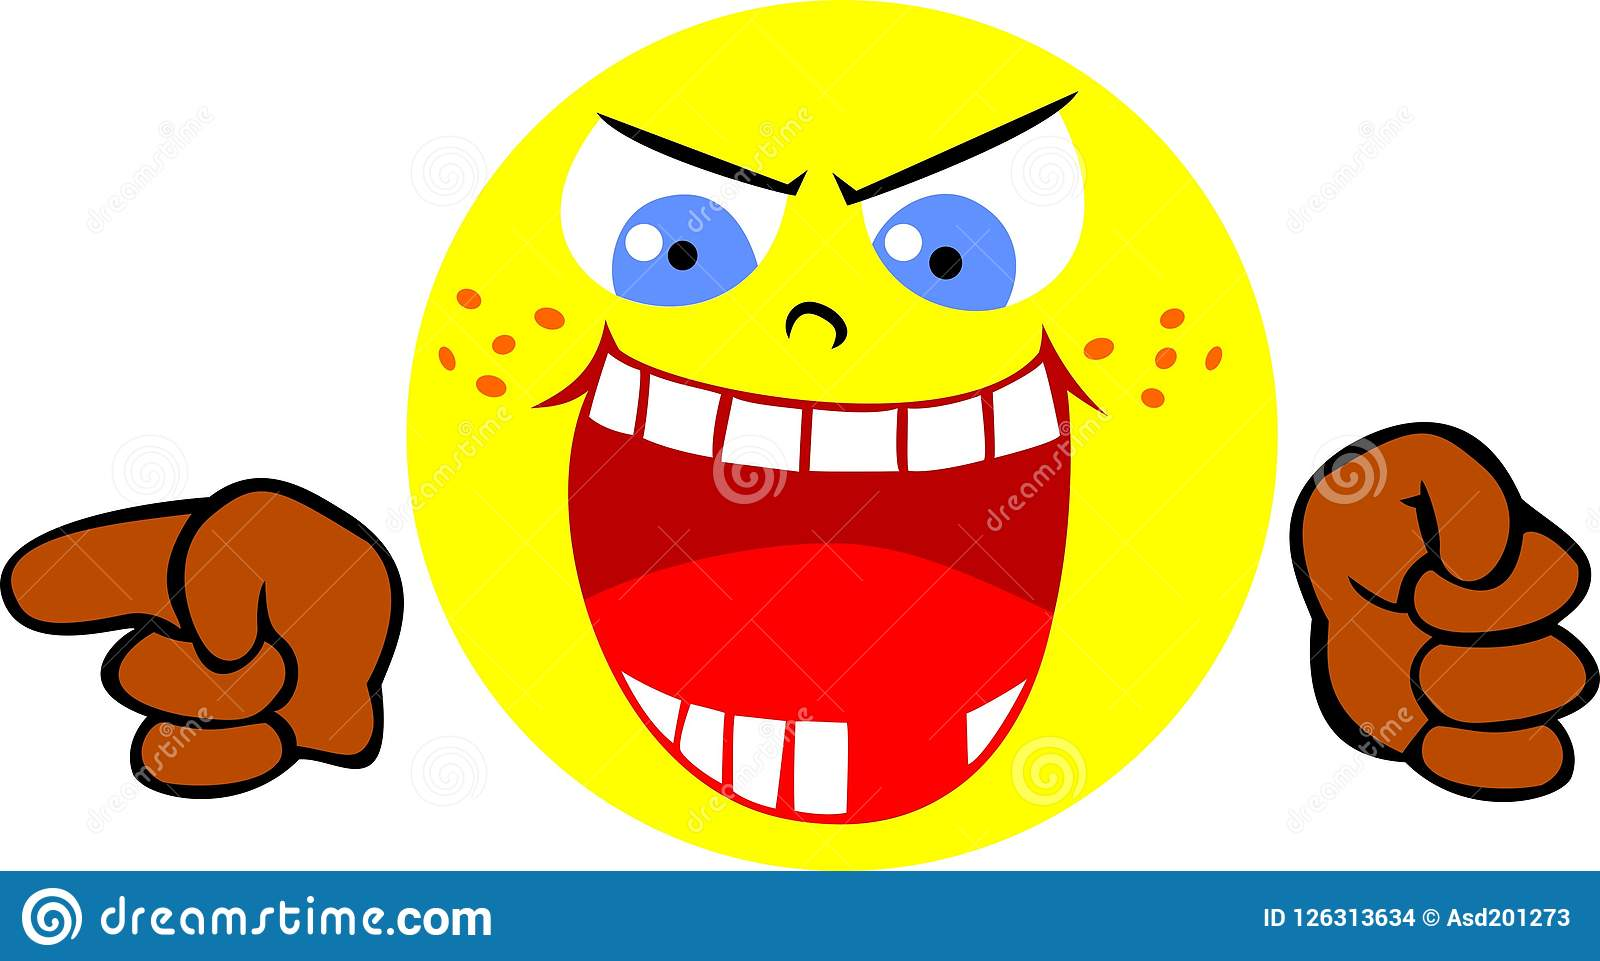 Funny Laughing Smiley Face Stock Illustrations 1893 Funny